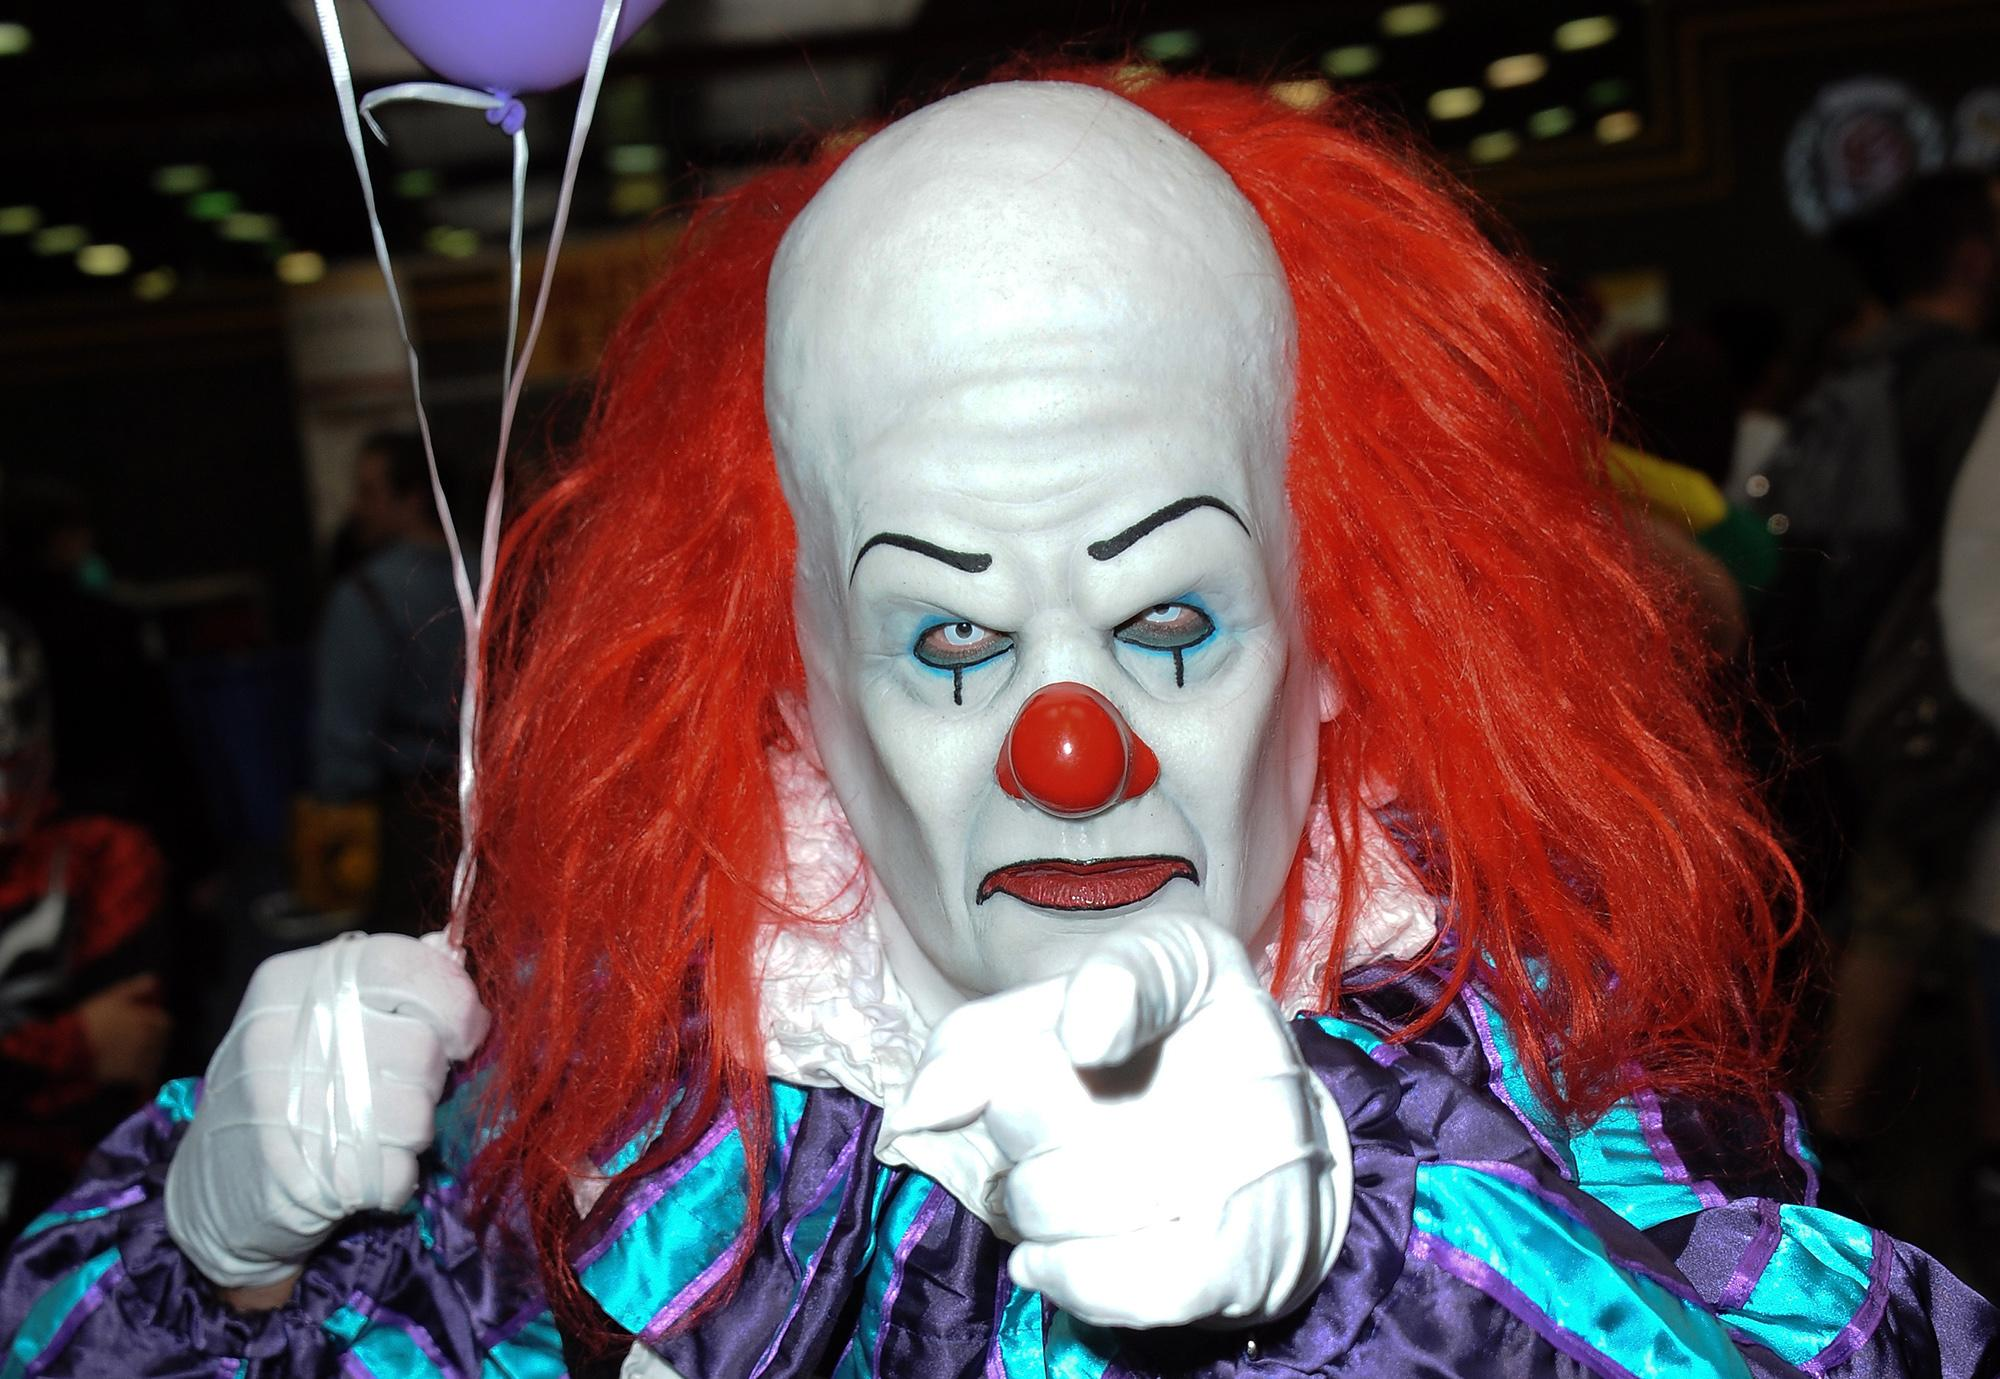 Stephen King S It Is Already Inspiring A Wave Of Creepy Clown Memes